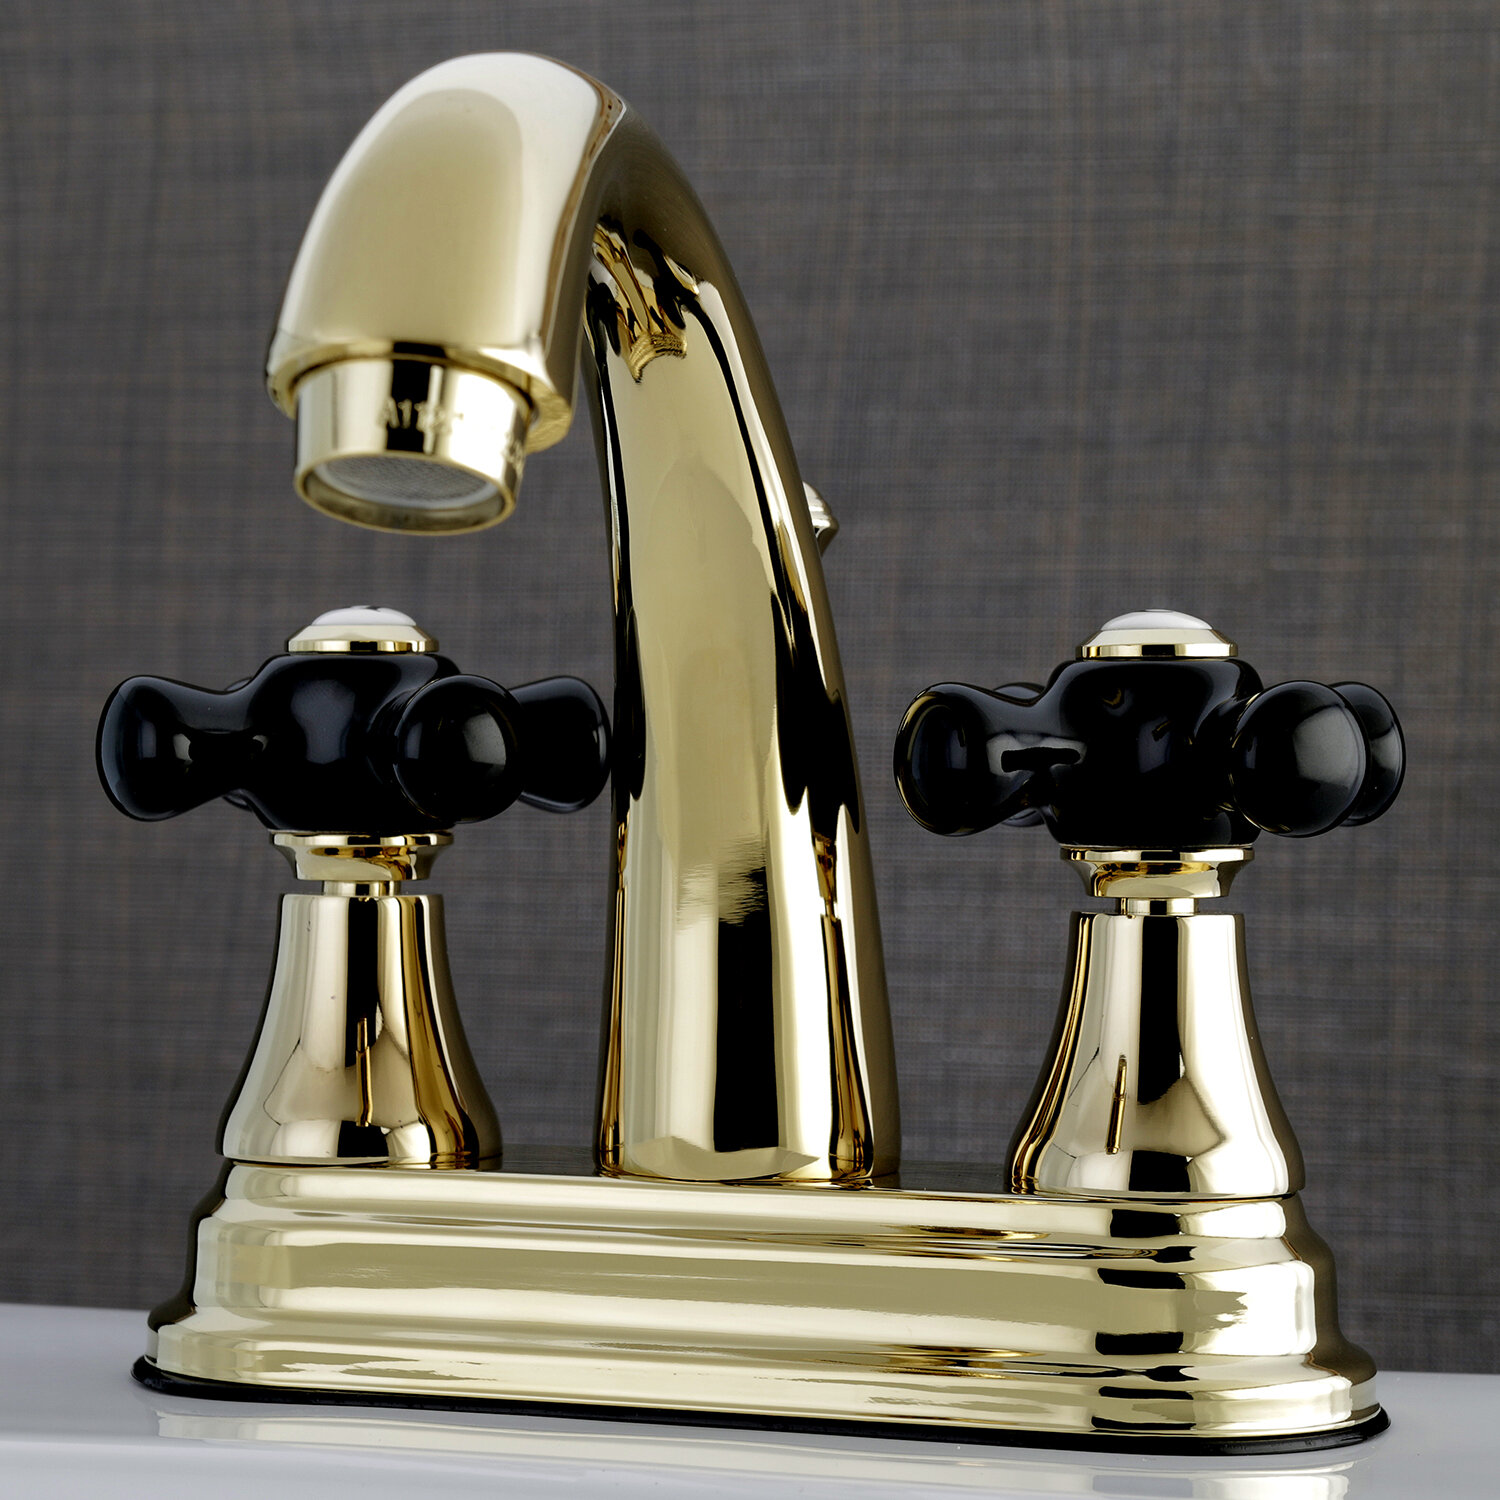 Kingston Brass Duchess Centerset Lavatory Faucet with Drain Assembly ...